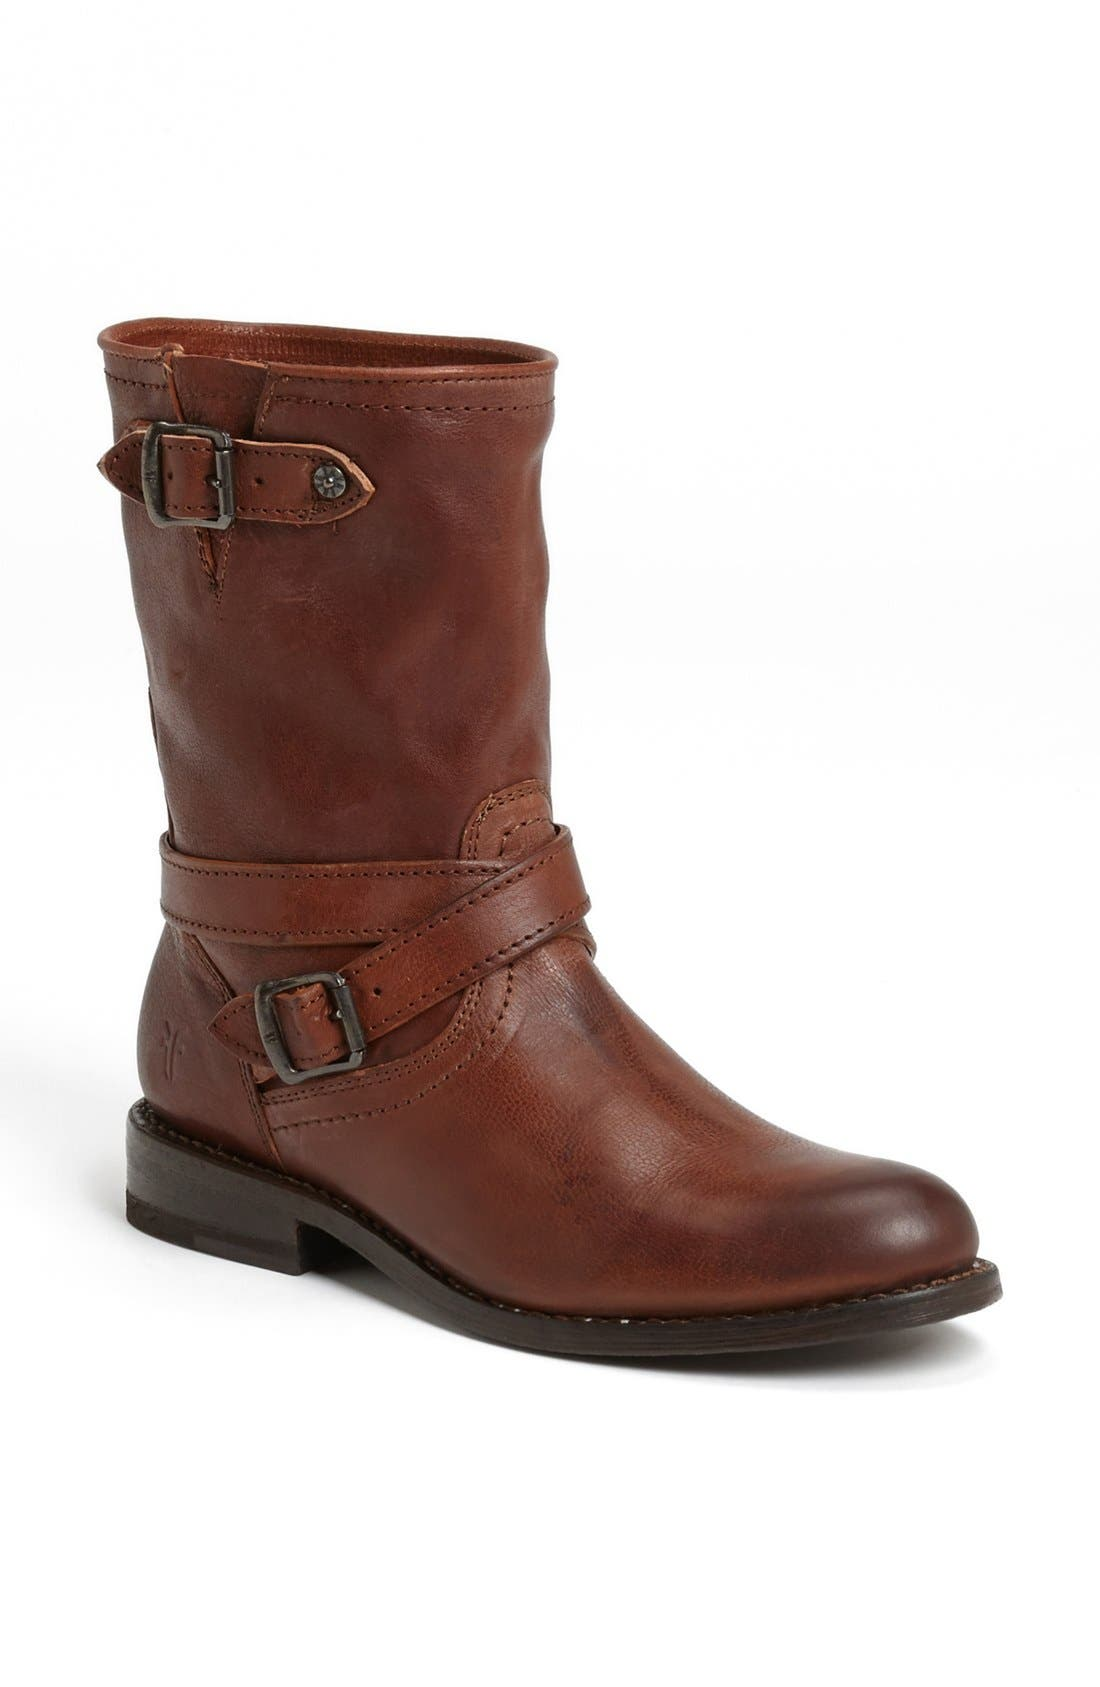 Main Image - Frye 'Jayden Cross Engineer' Leather Boot